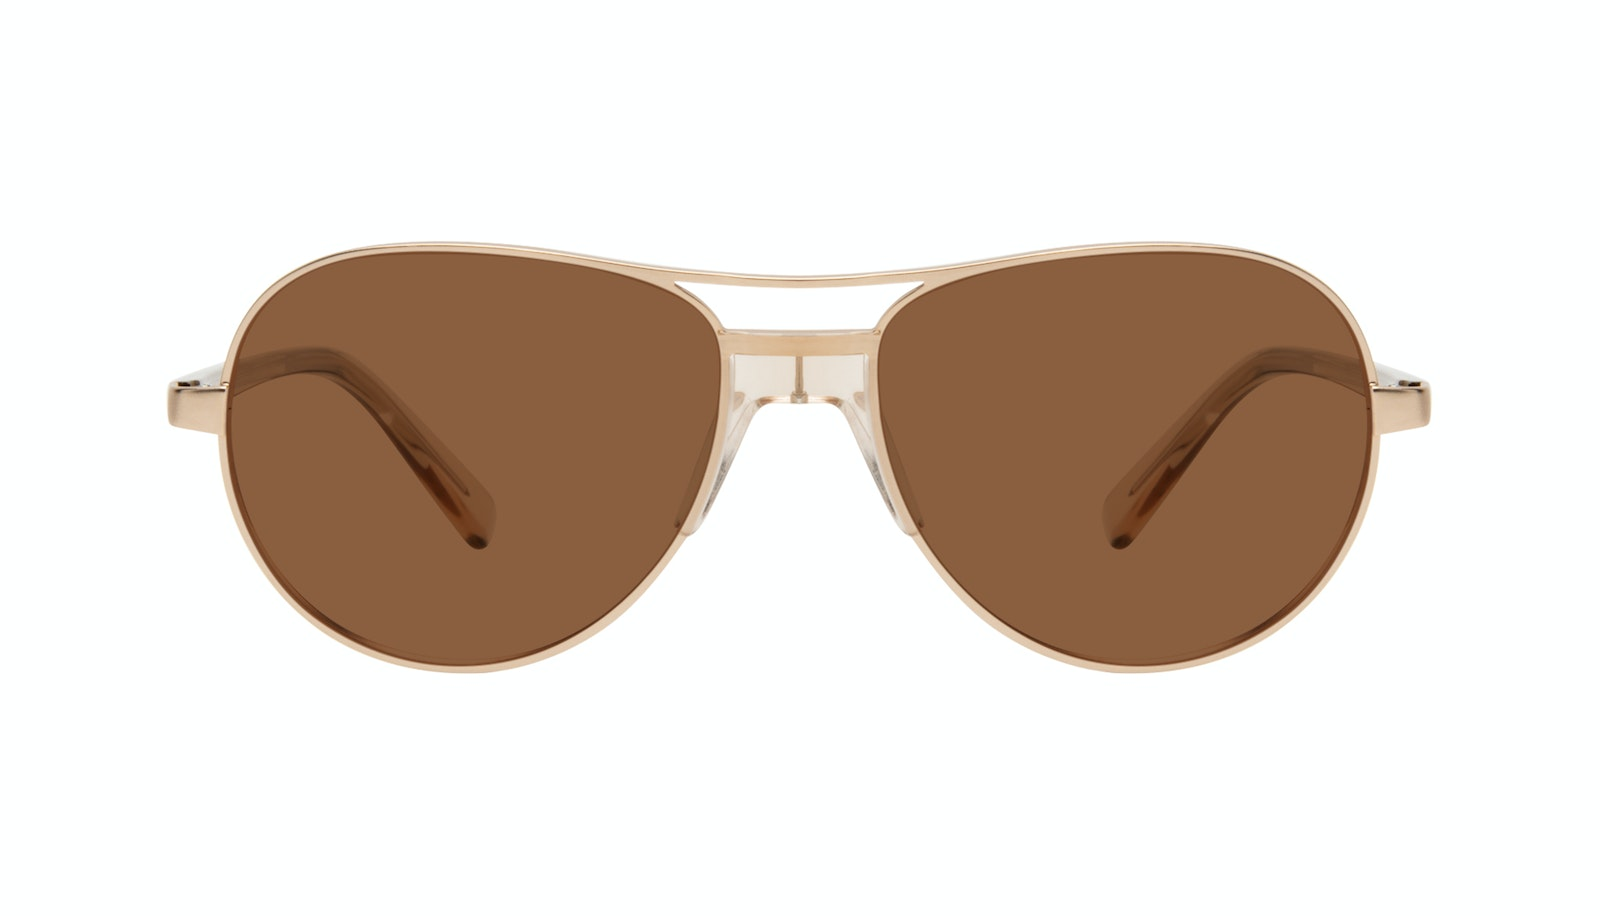 Affordable Fashion Glasses Aviator Sunglasses Women Ultimate Gold